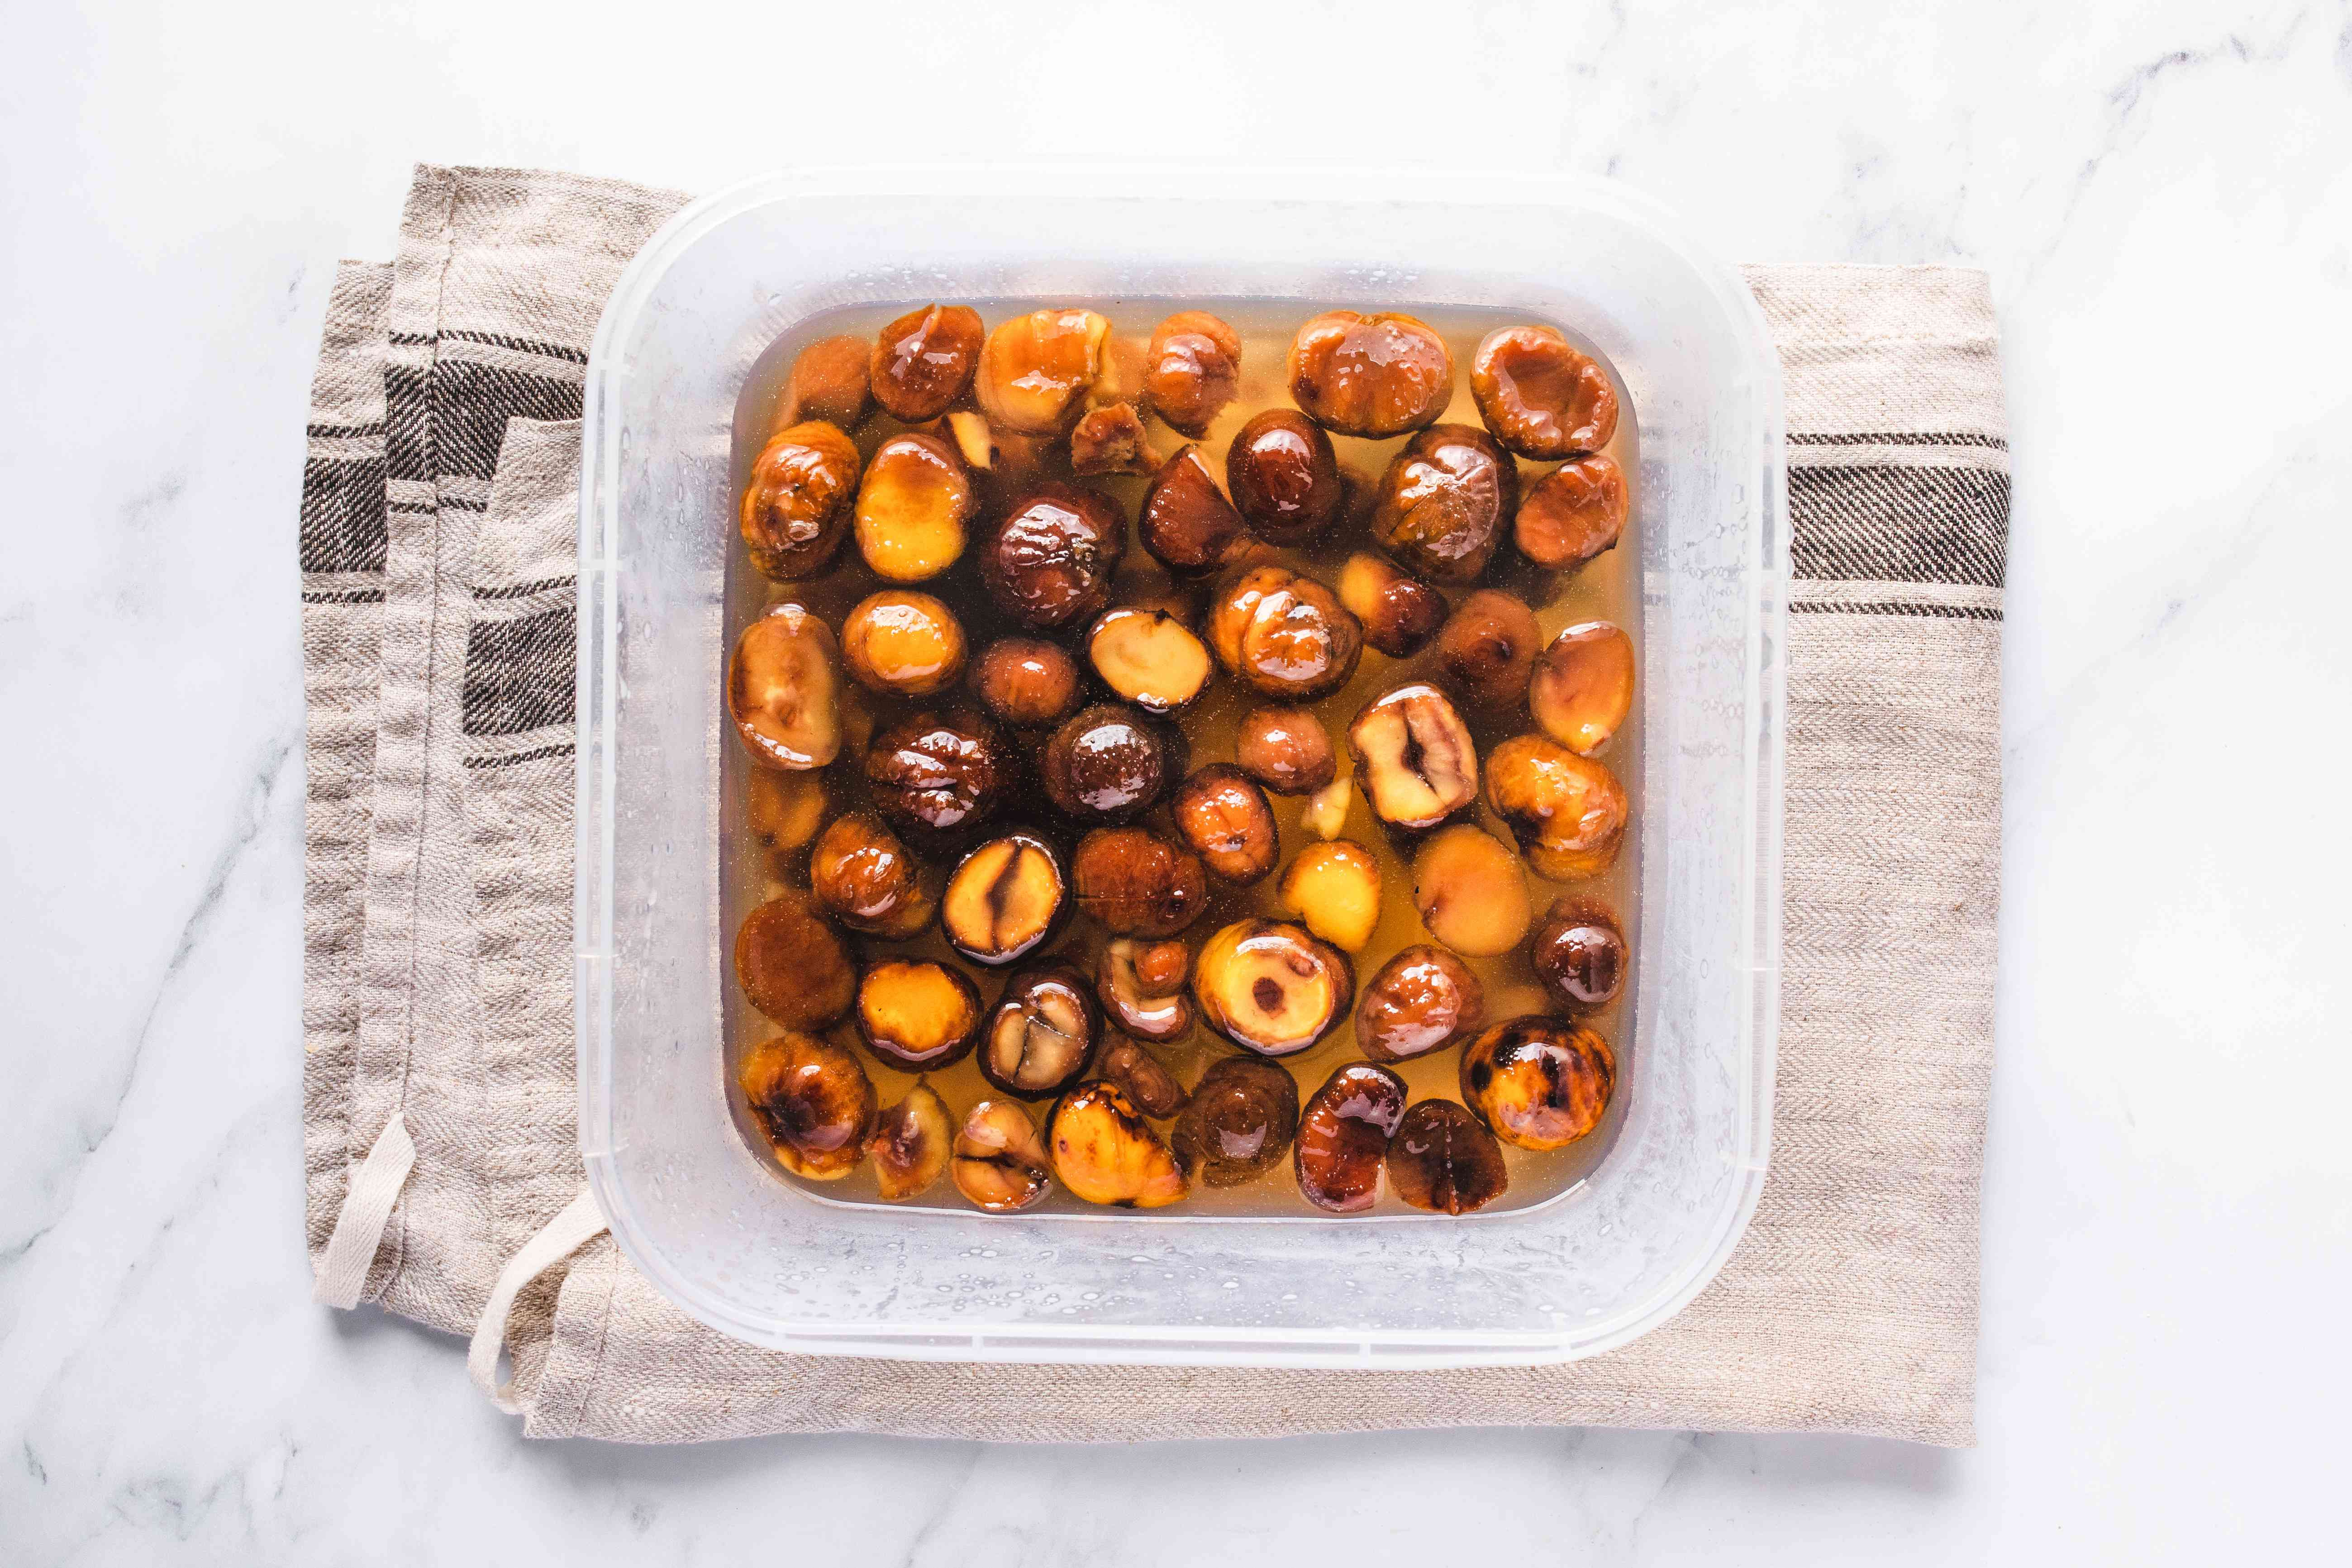 Chestnuts in container soaking